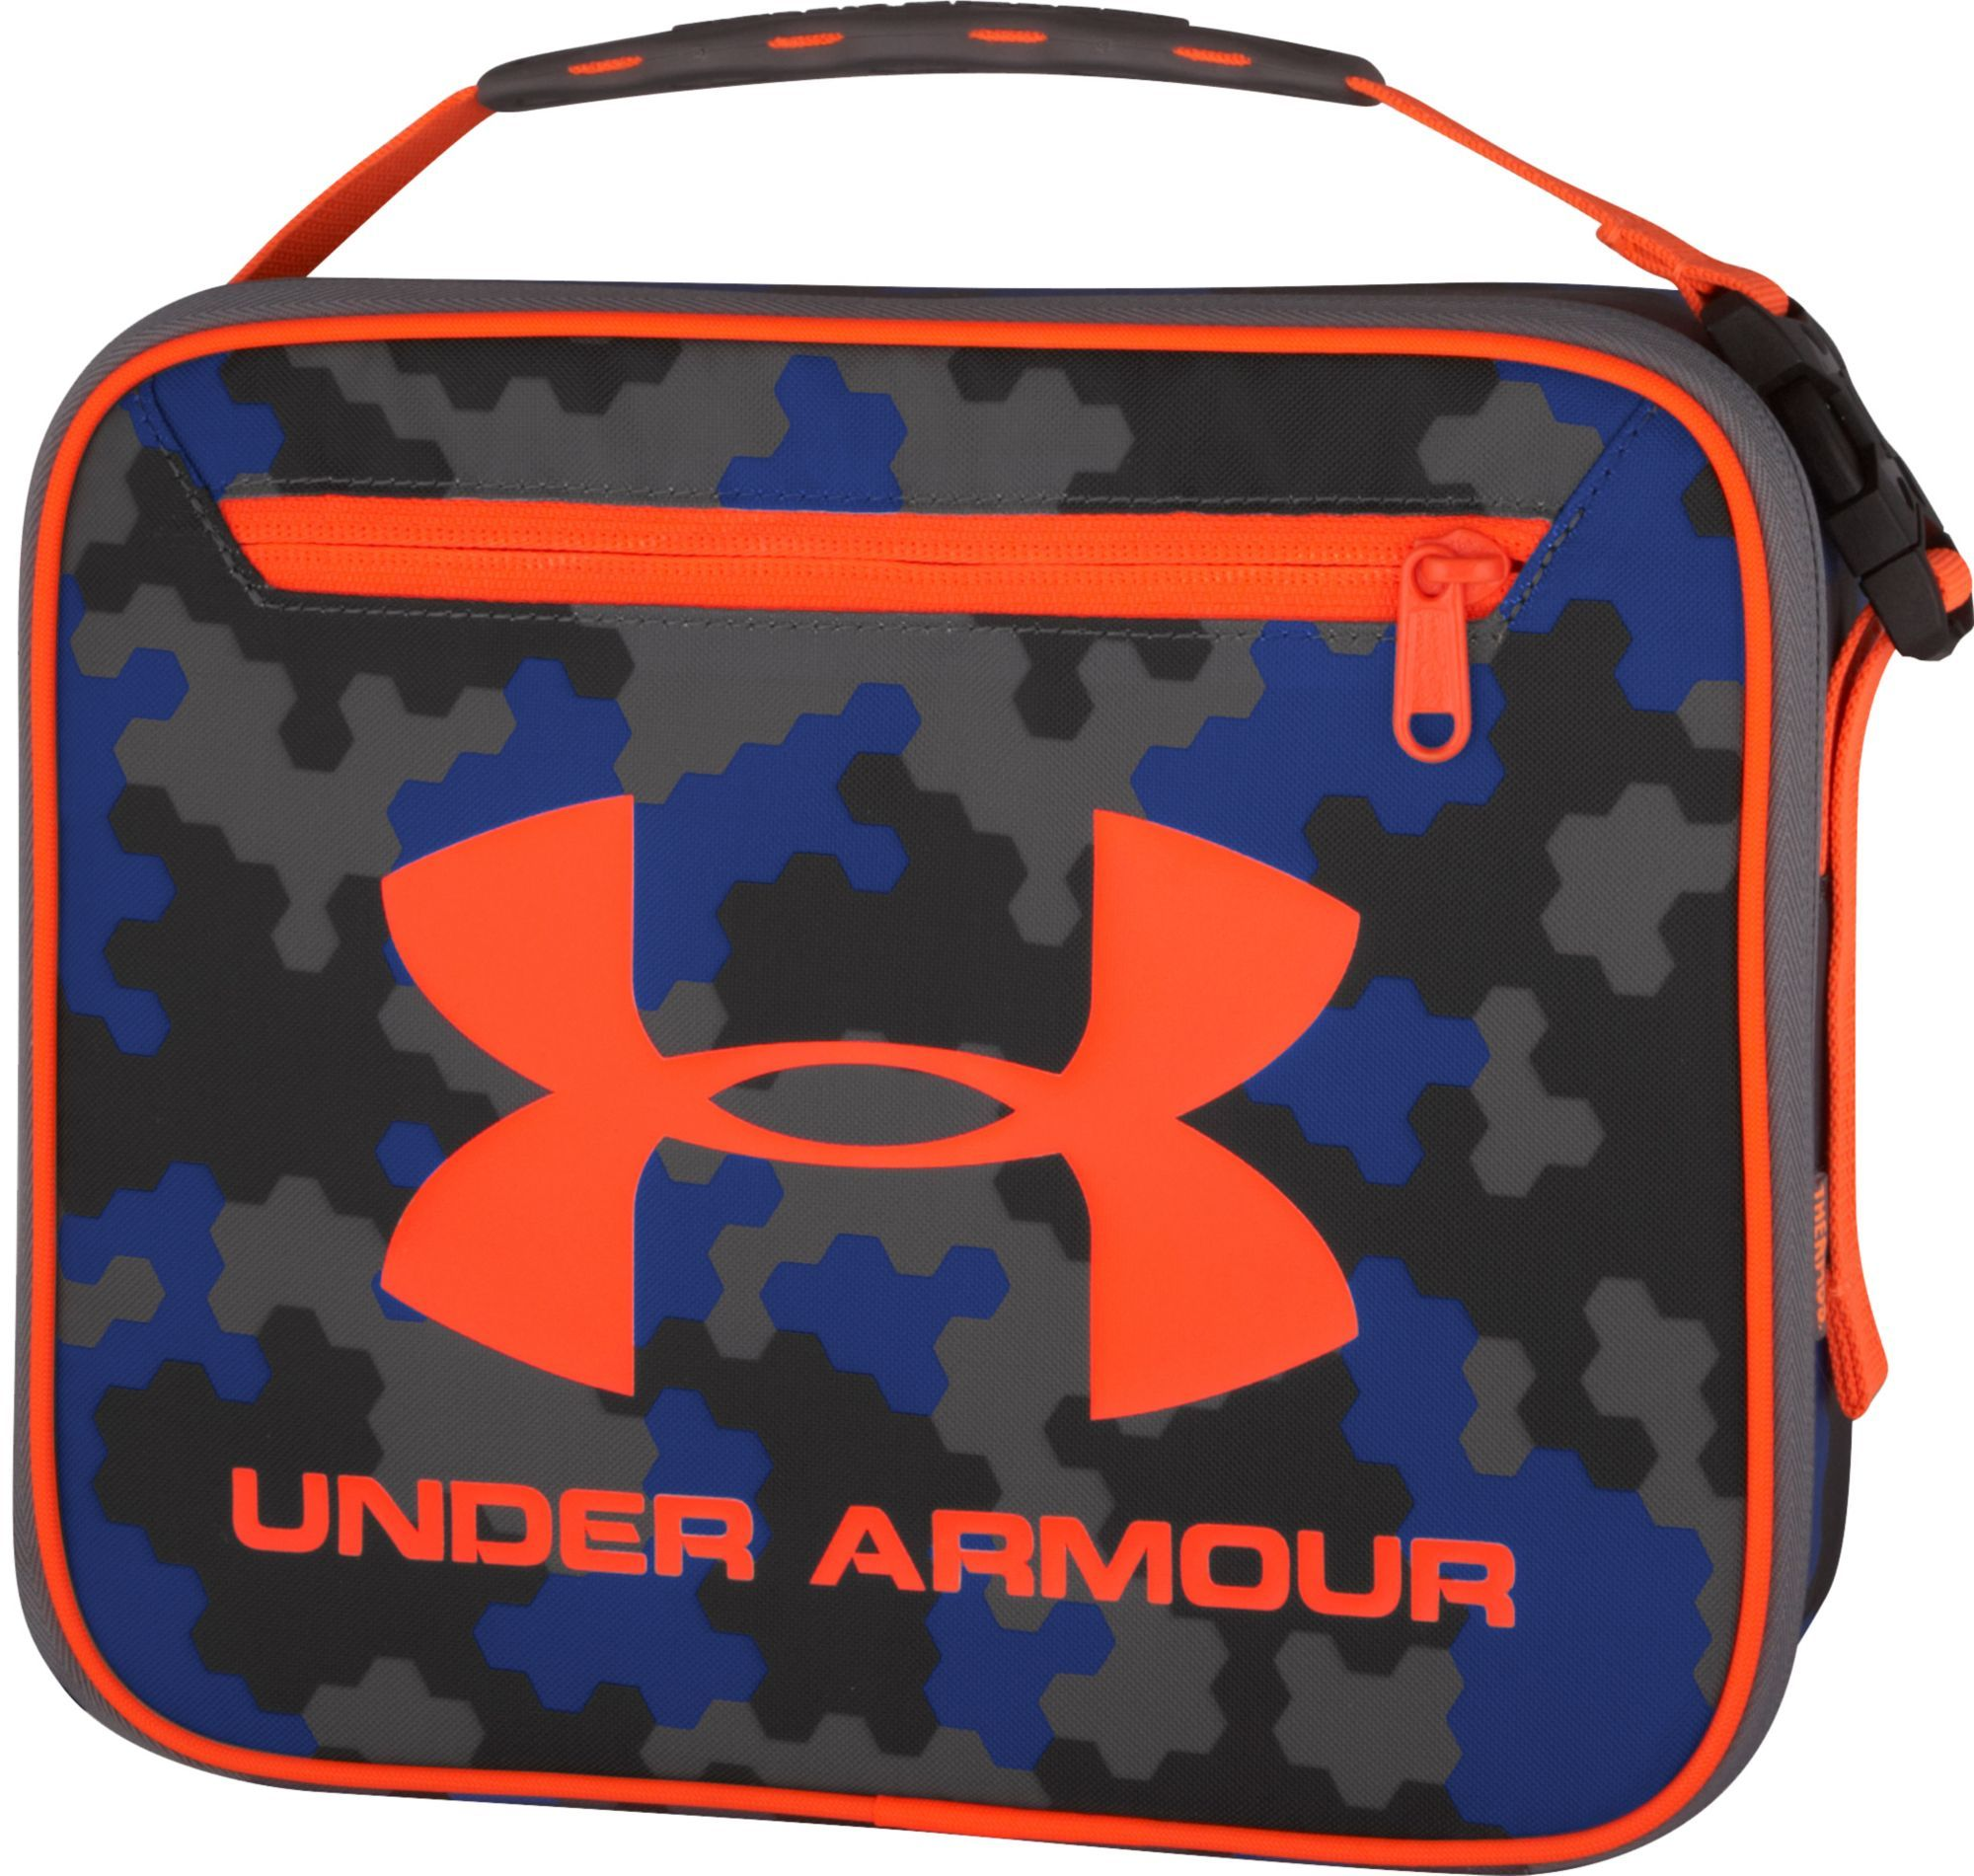 255a9fe2 Under Armour Boys' Lunch Box | Products | Boys lunch bags, Lunch ...